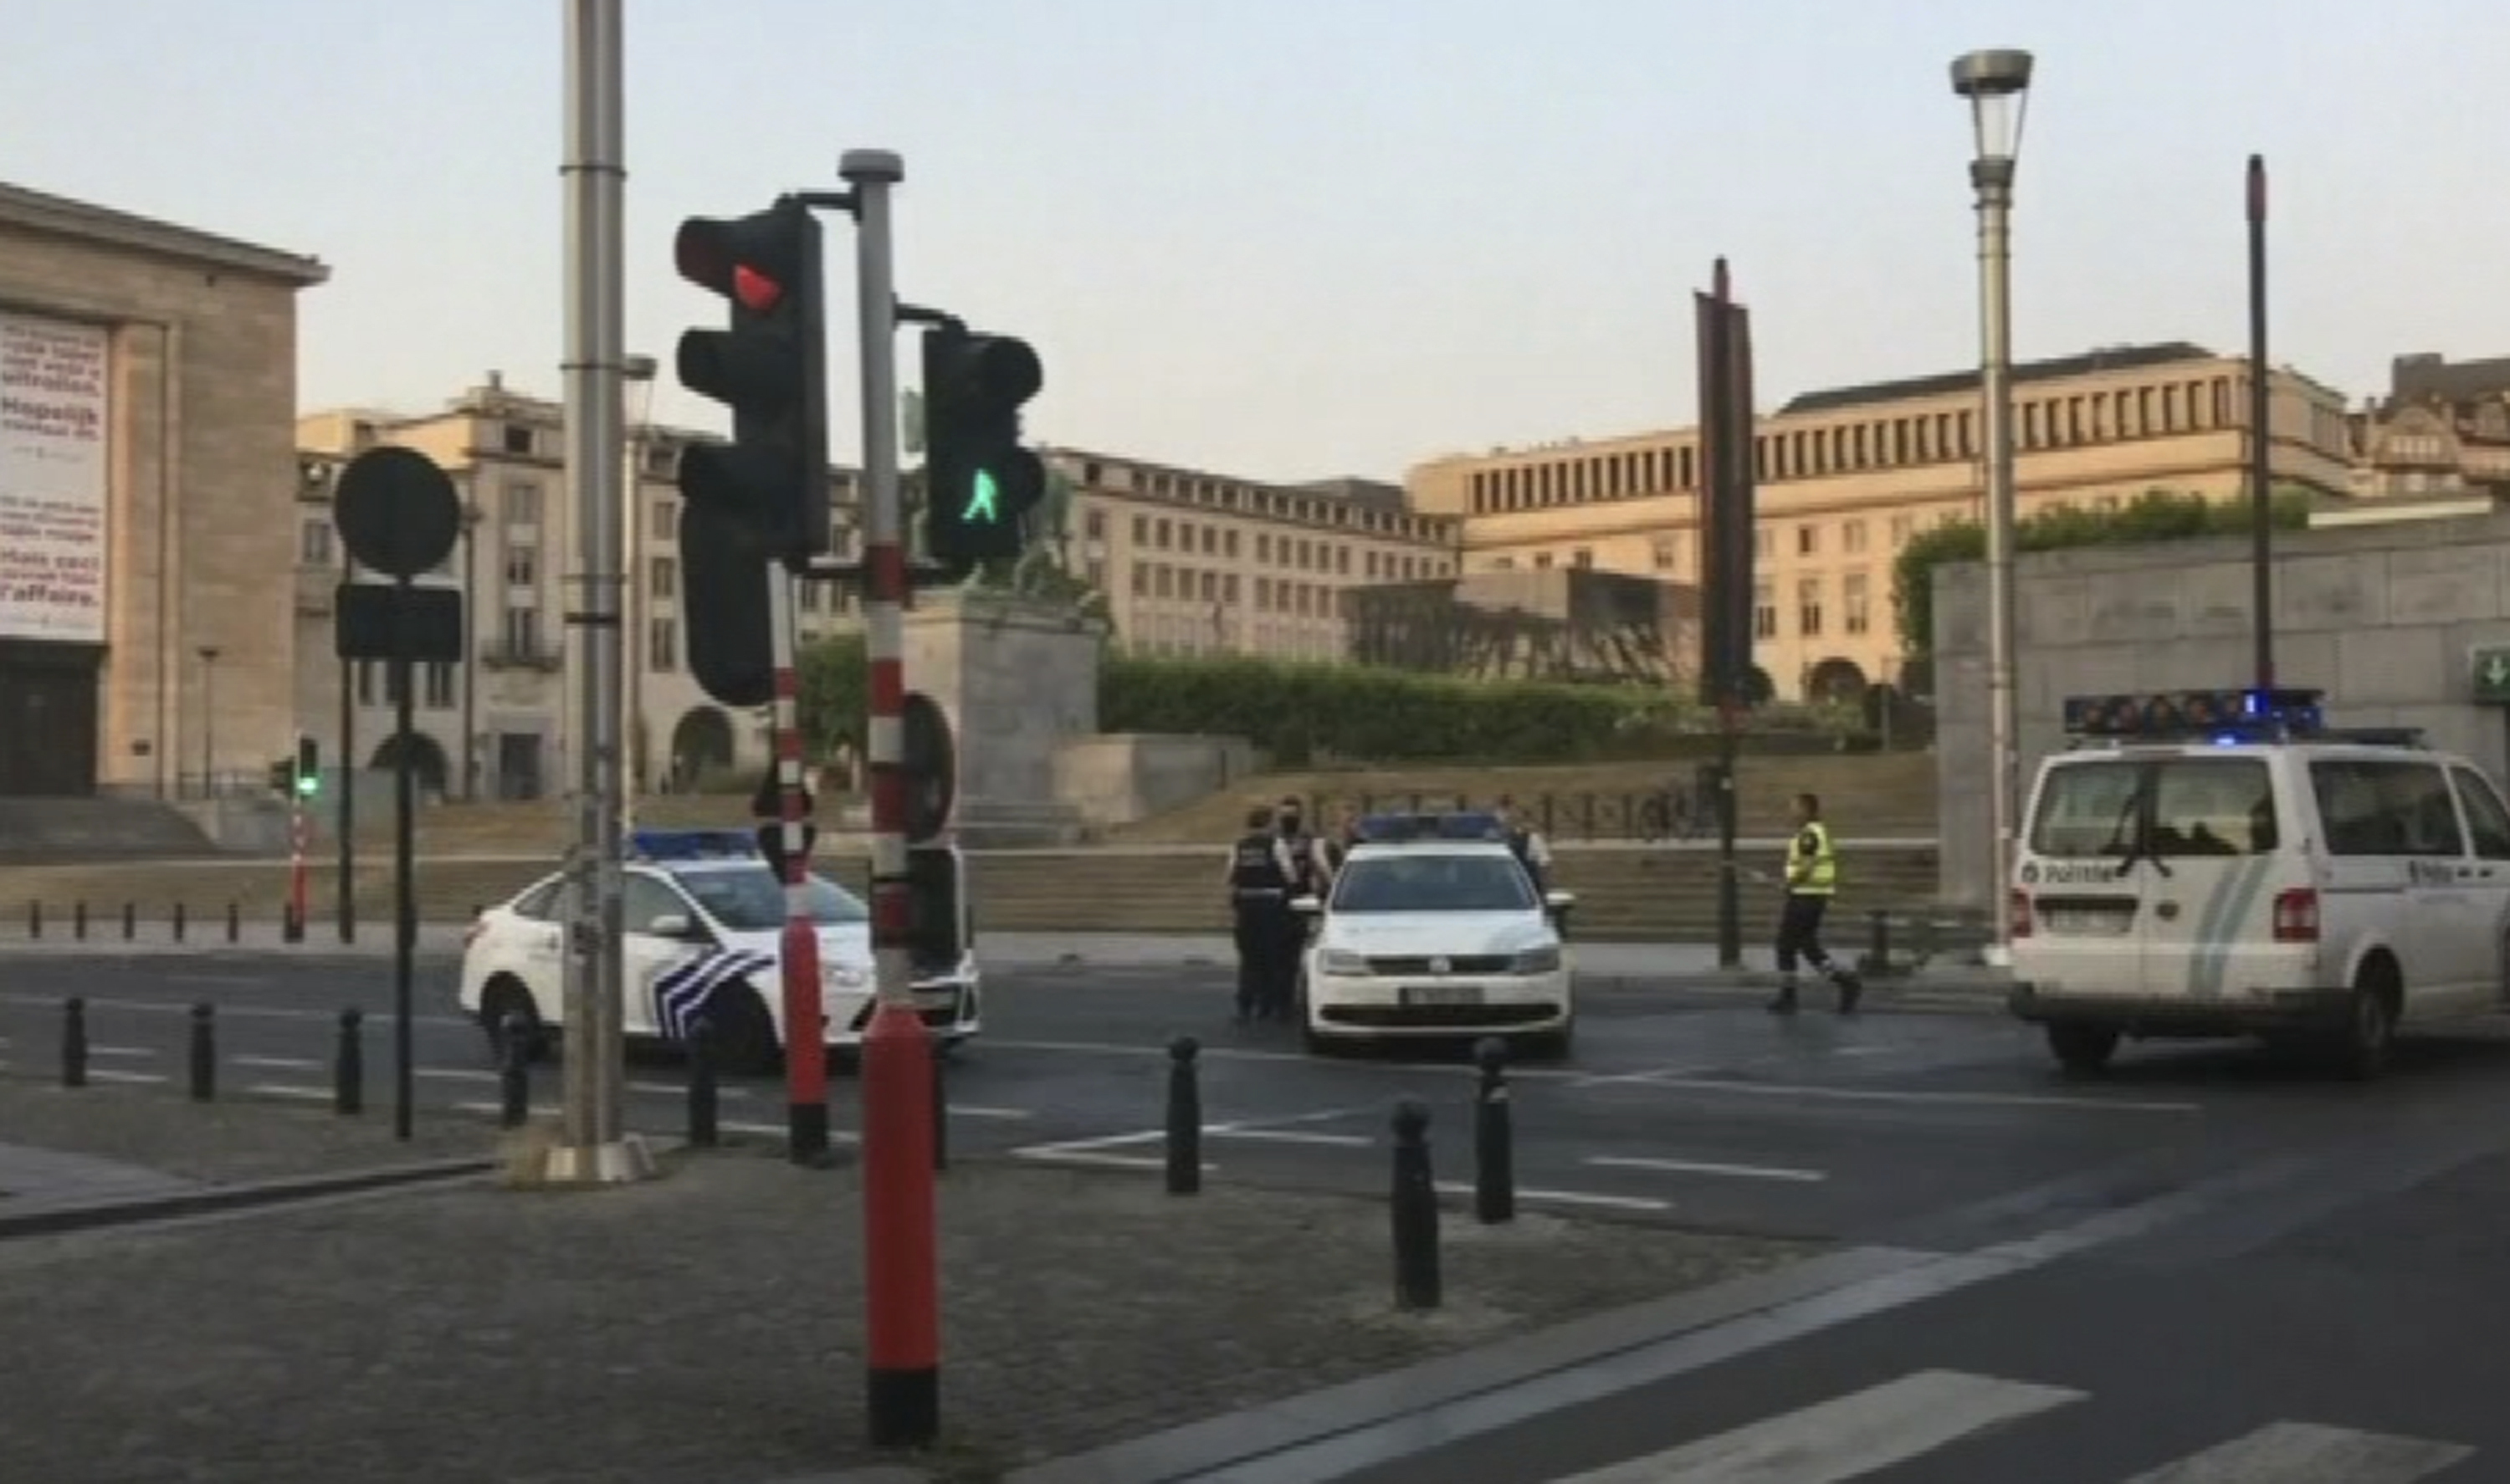 In this image taken from video, police cars create a cordon near the train station in central Brussels on June 20, 2017. Belgian media report that explosion-like noises have been heard at a Brussels train station; the main square evacuated.